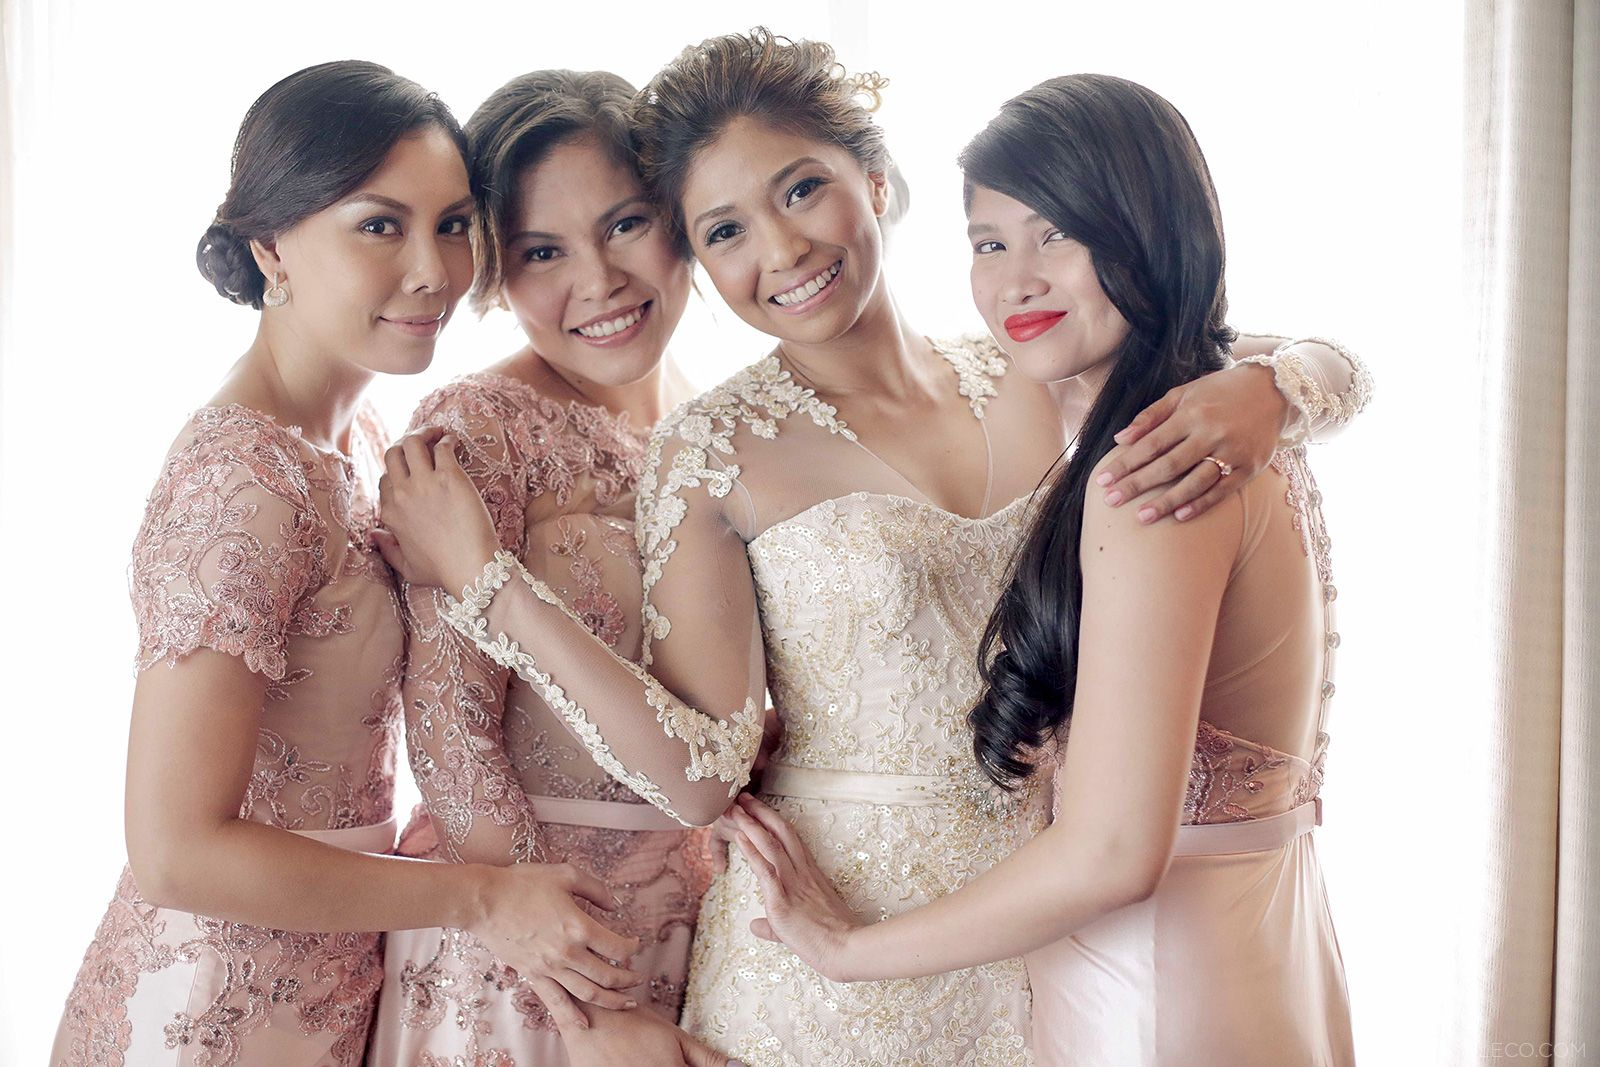 Lace Bridal Gown and Entourage By Camille Co